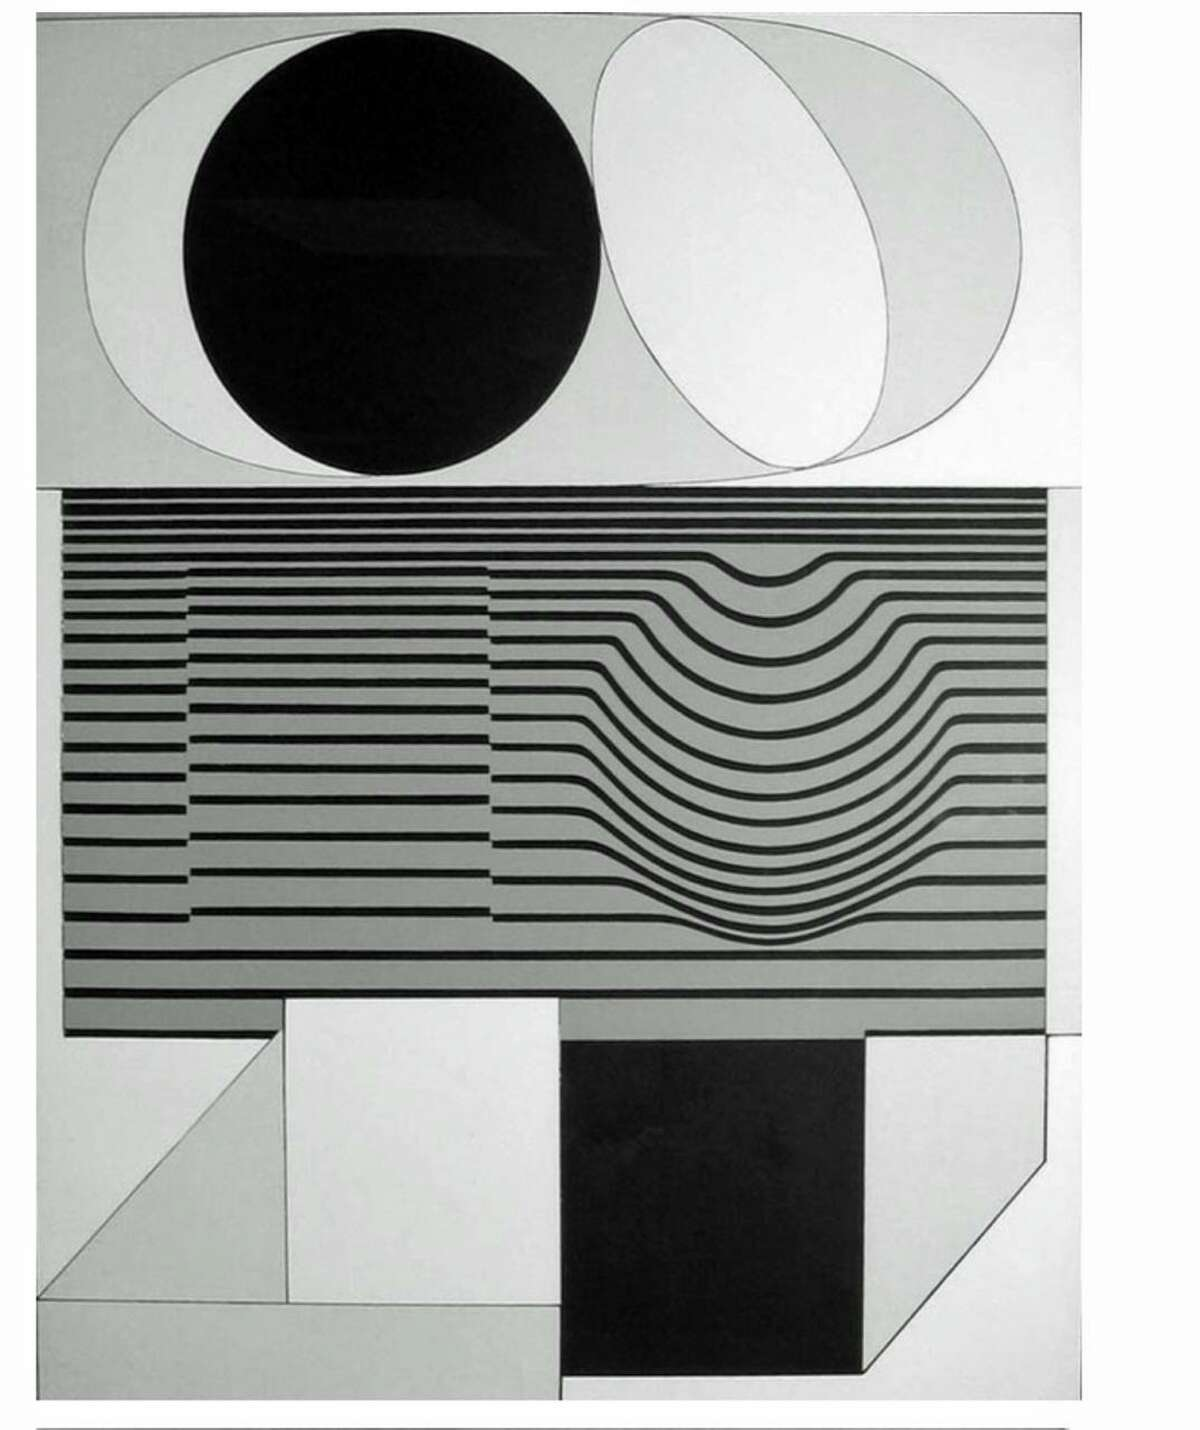 Victor Vasarely's serigraph